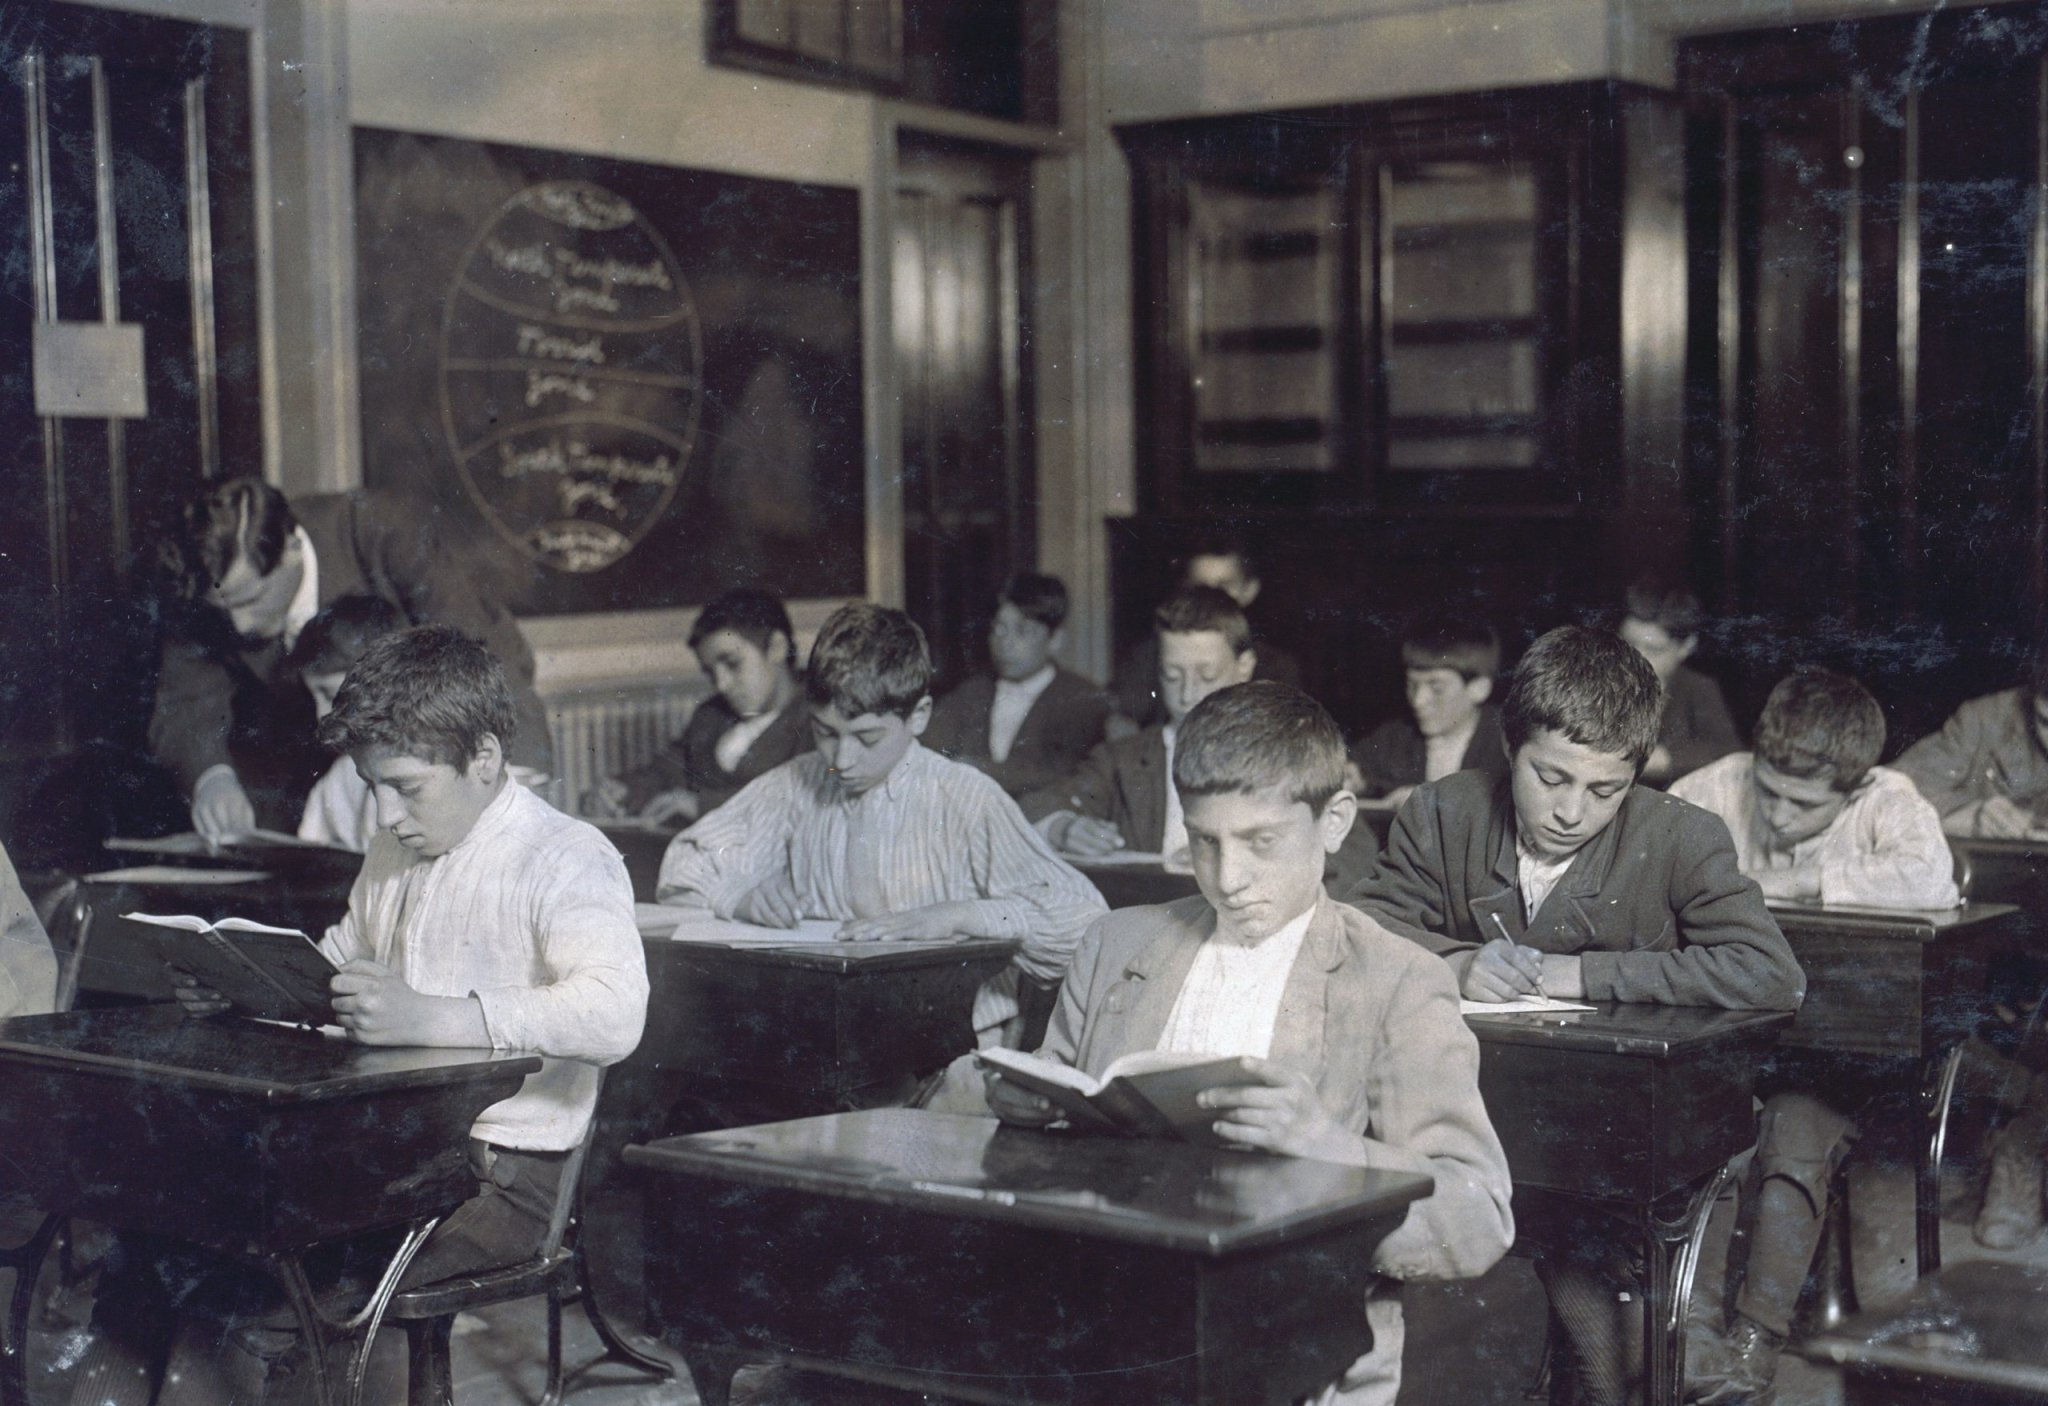 This Is What School Was Like 100 Years Ago